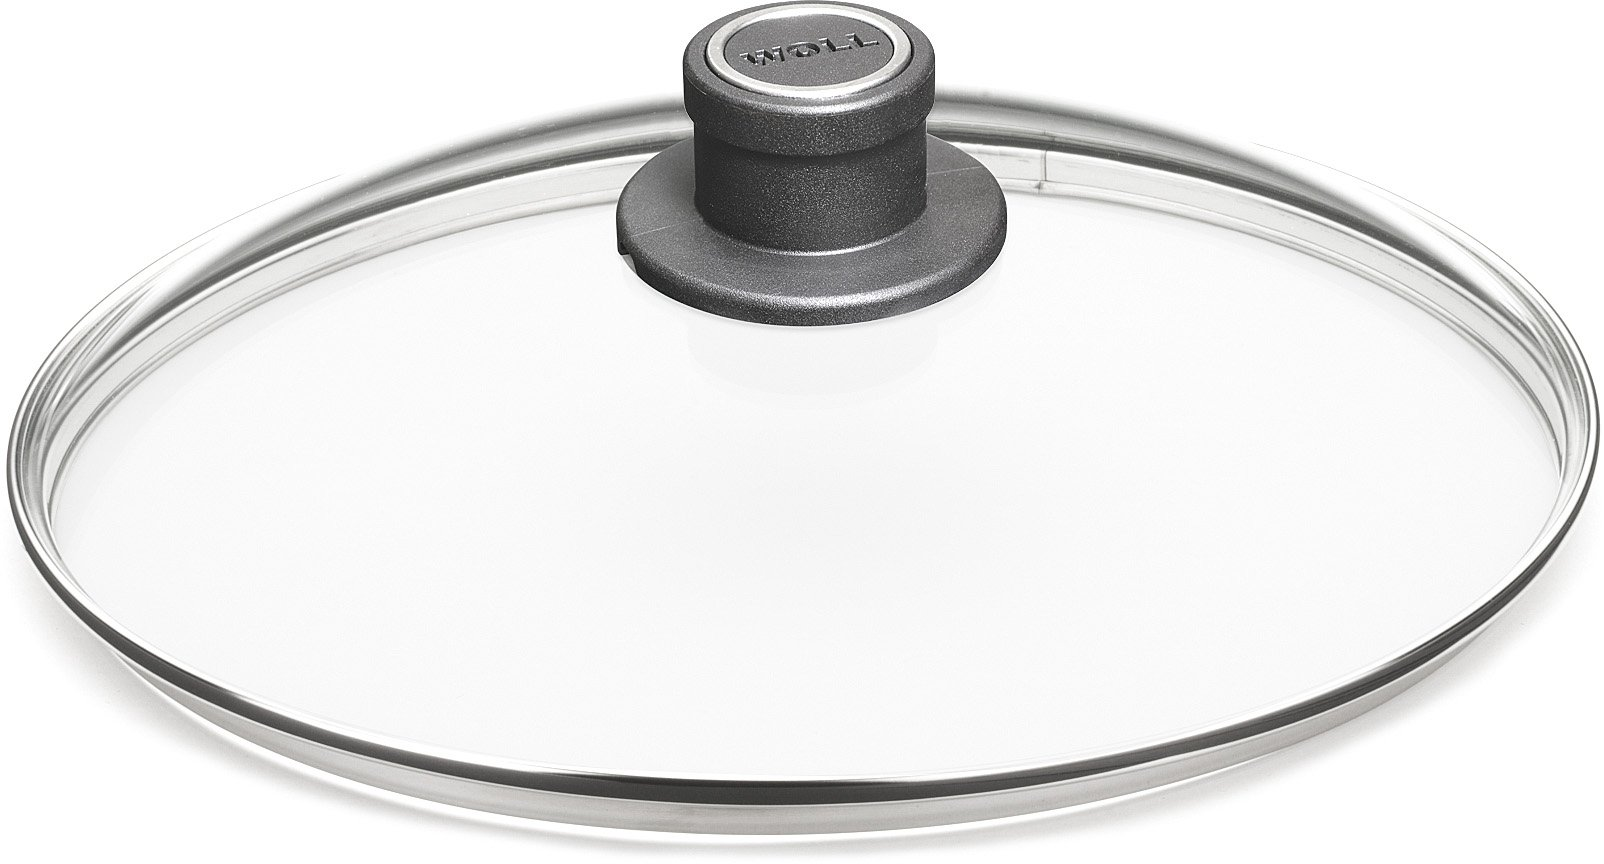 Woll Tempered Glass with Stainless Steel Rim & Vented Knob Round Lid, 11 3/4'', Clear